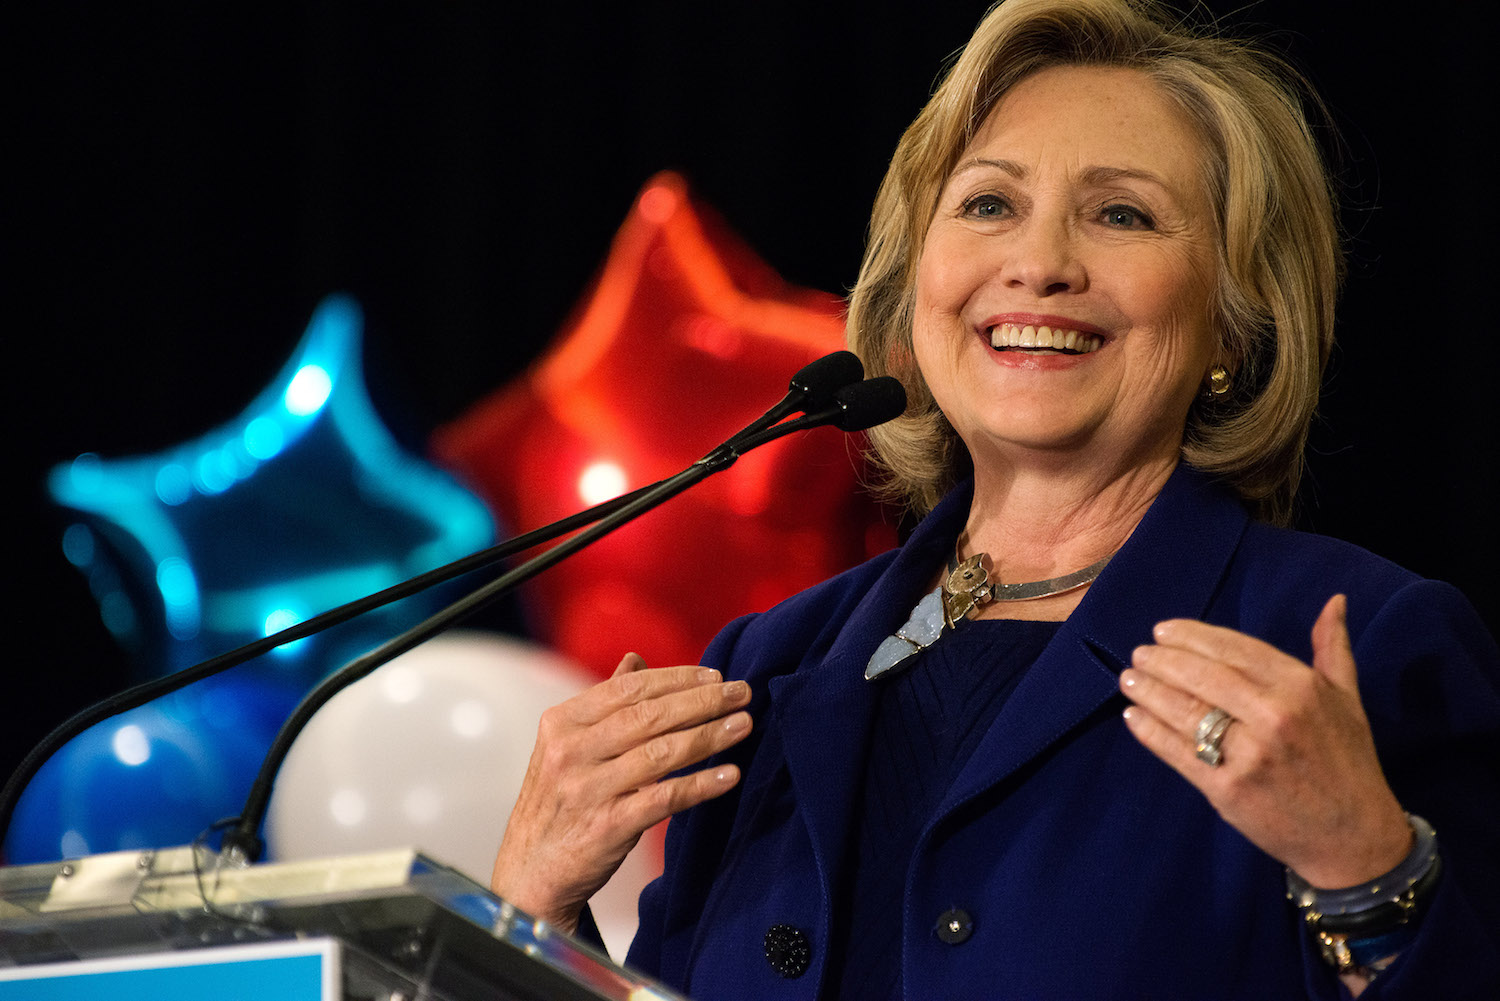 Hillary Clinton Giving A Speech Into A Microphone In Front Of Red, White,  And